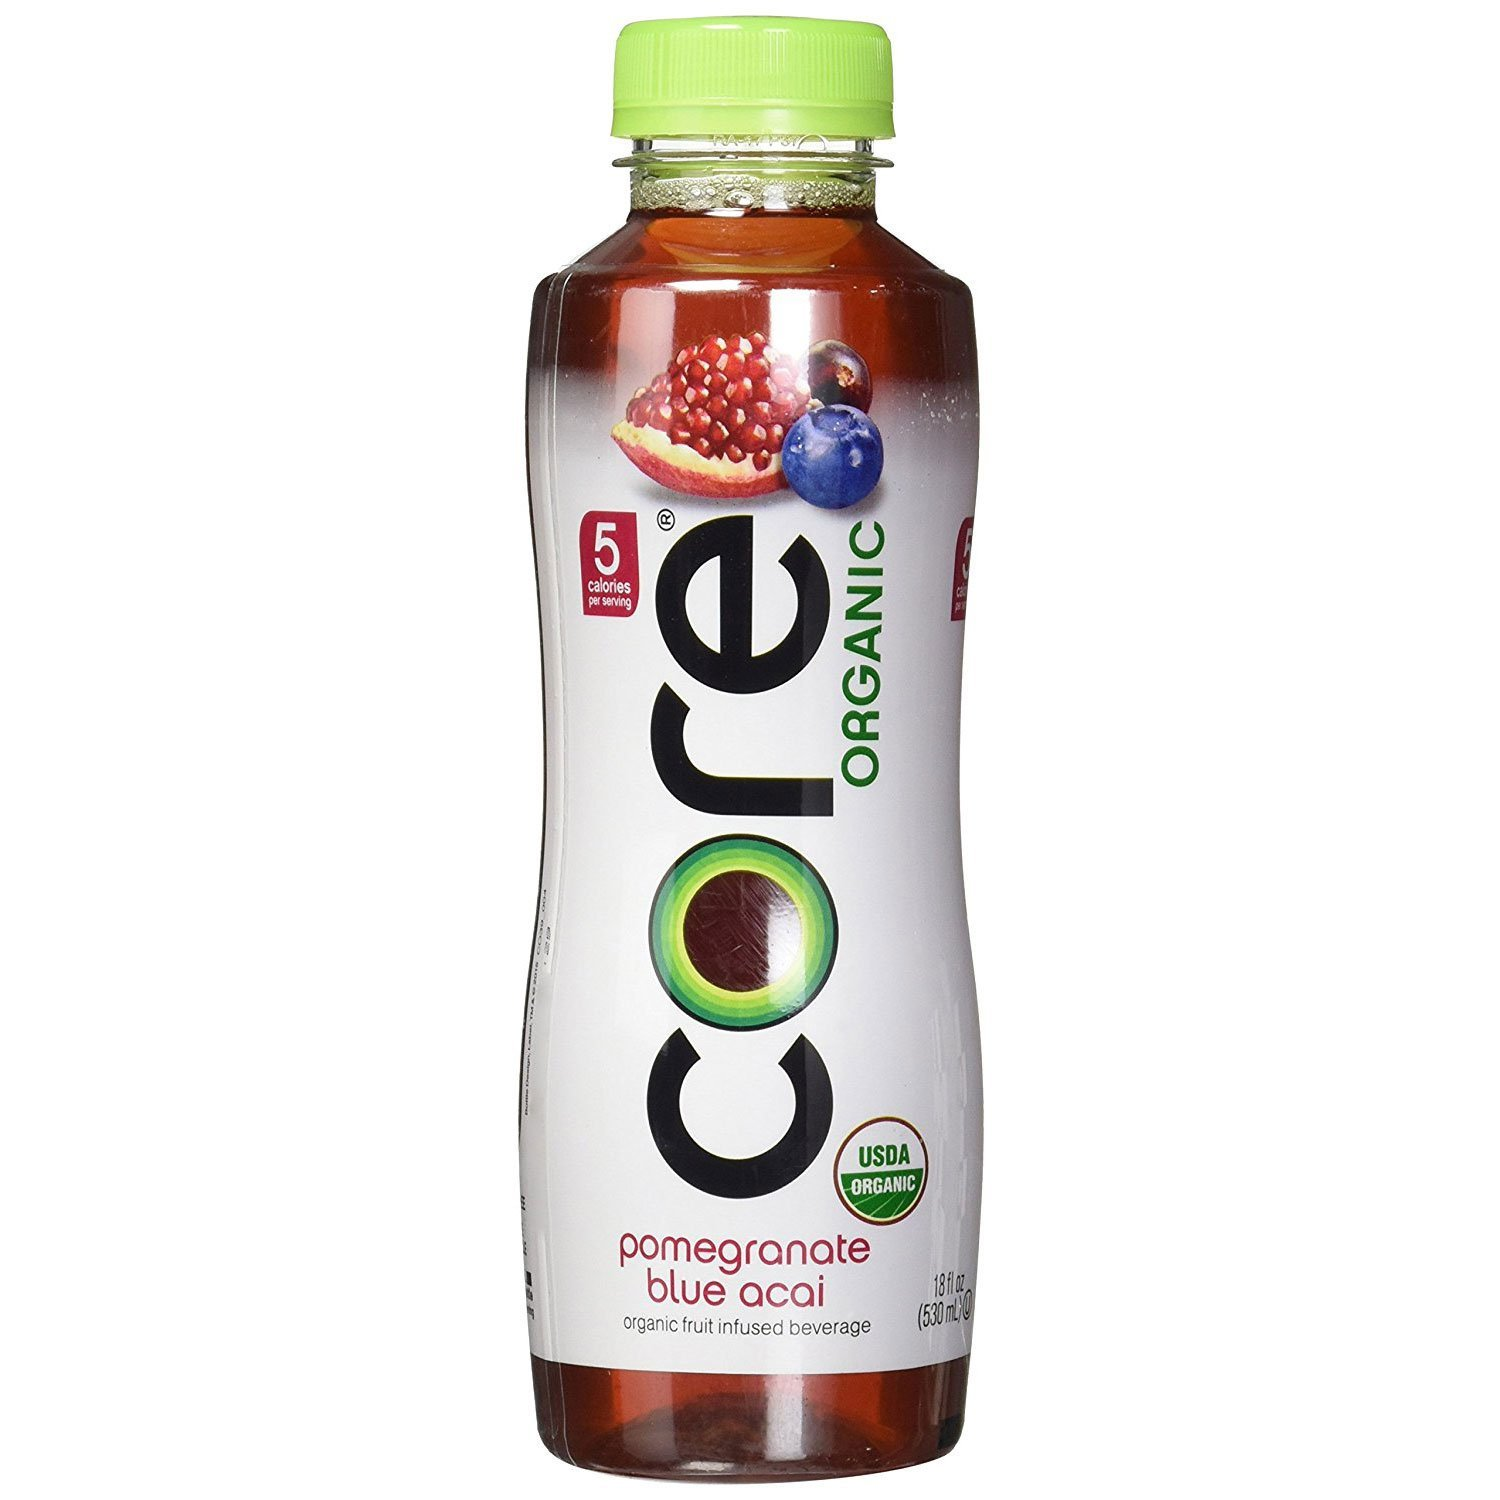 Core Organic Fruit Infused Beverage, 18 Fl Oz, Pomegranate Blueberry Acai (Pack of 36)